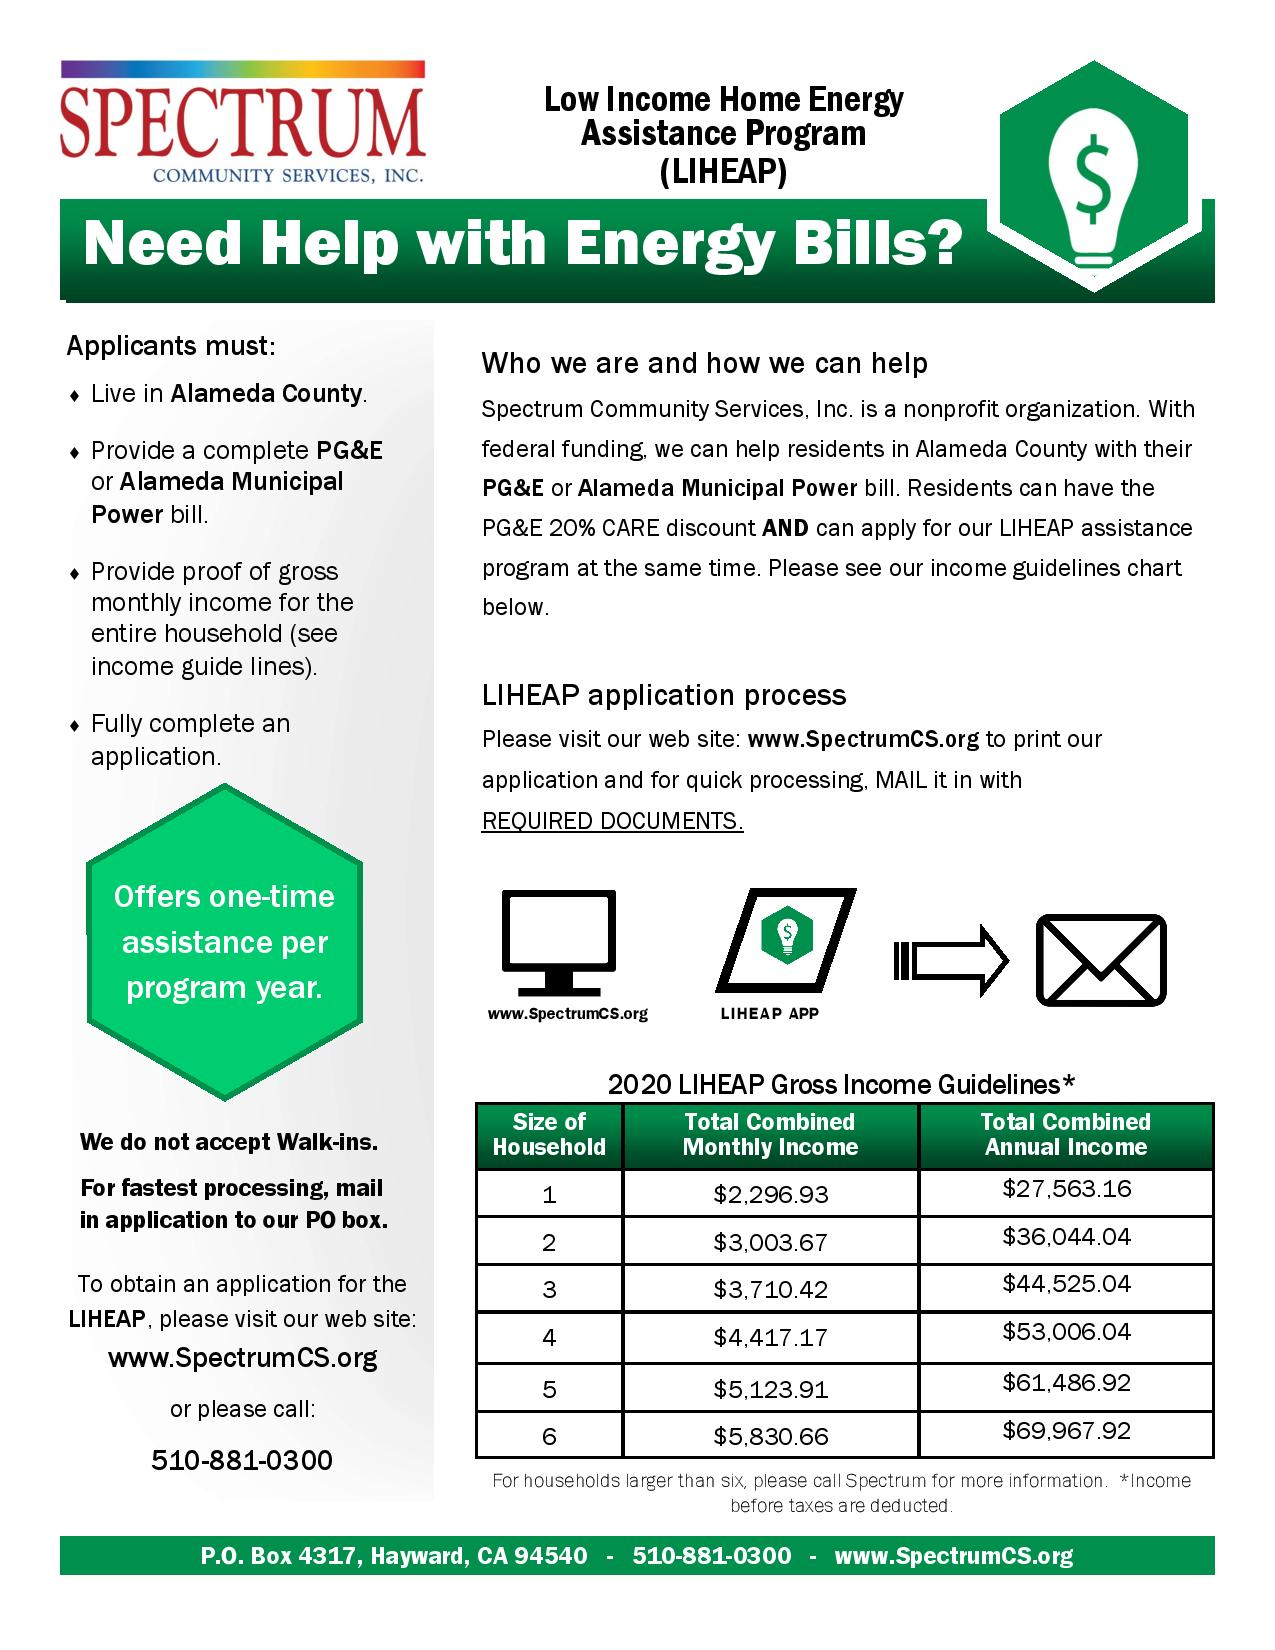 Low Income Energy Assistance Program